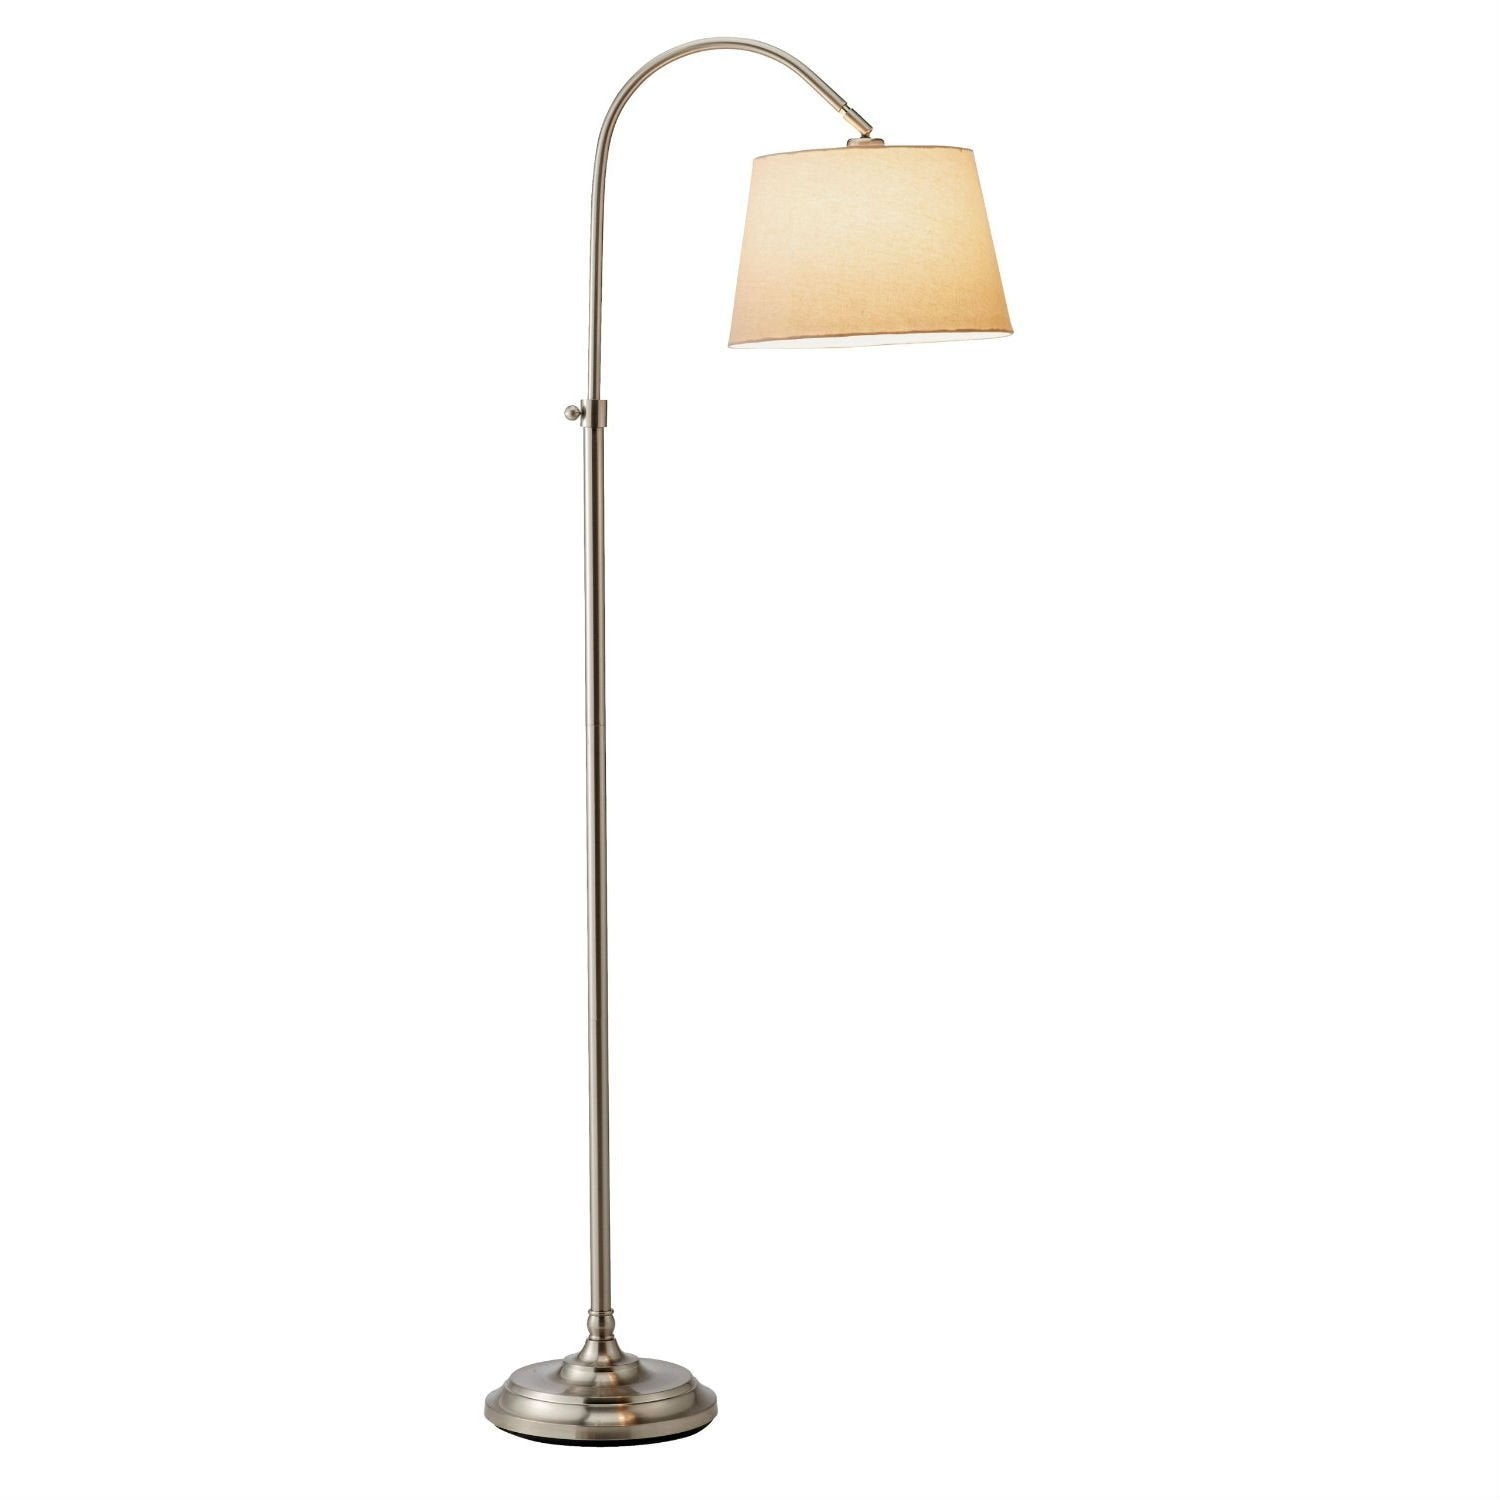 Ulf Floor Lamp